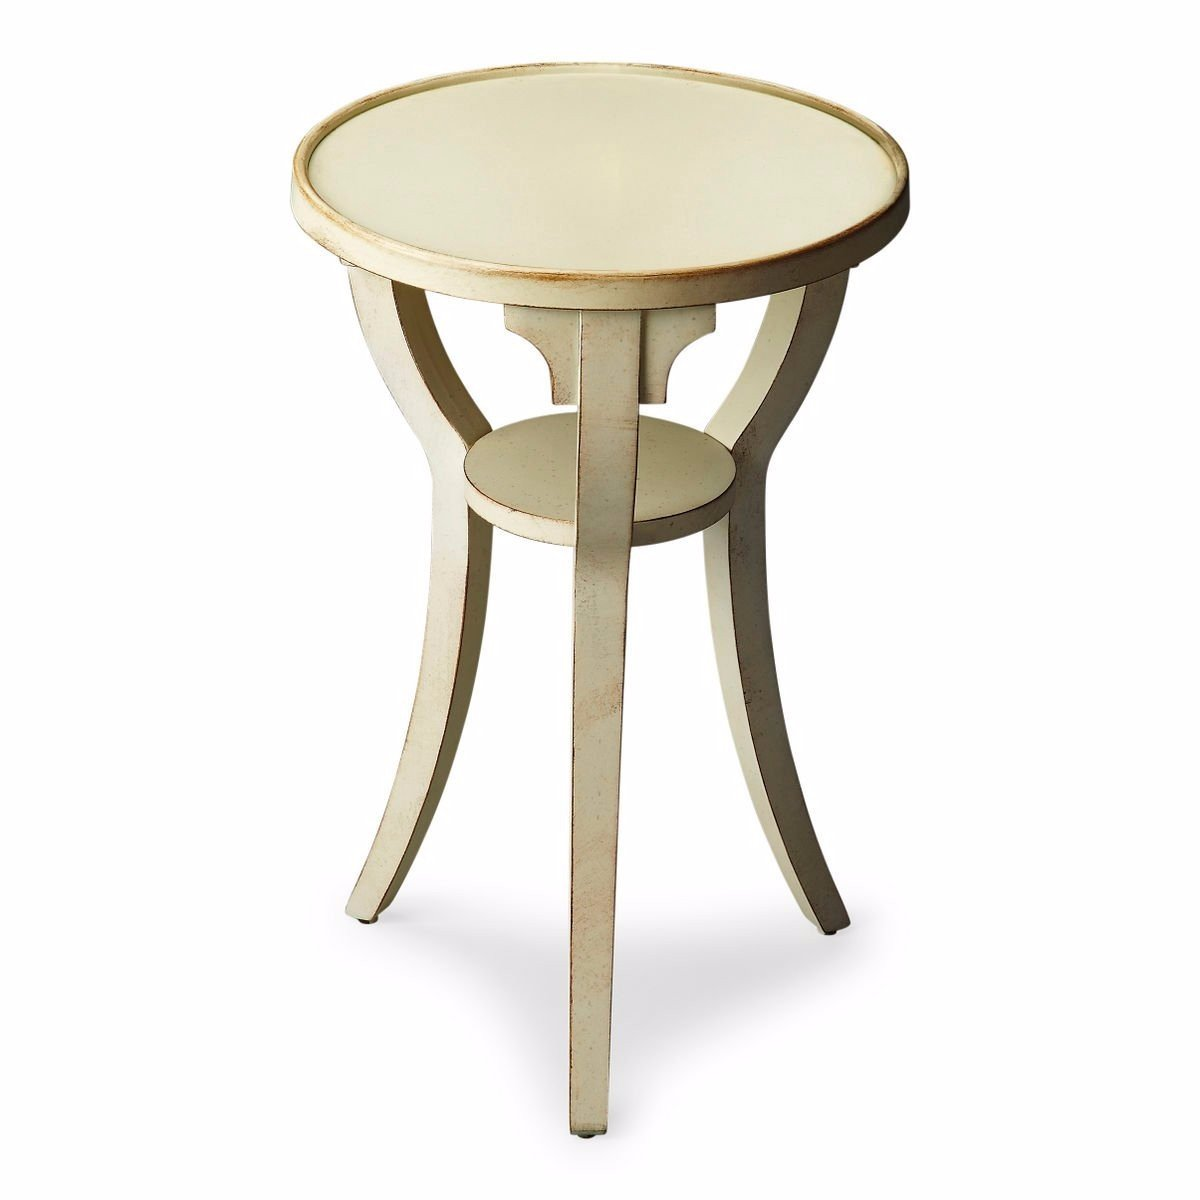 Ambiant ROUND ACCENT TABLE